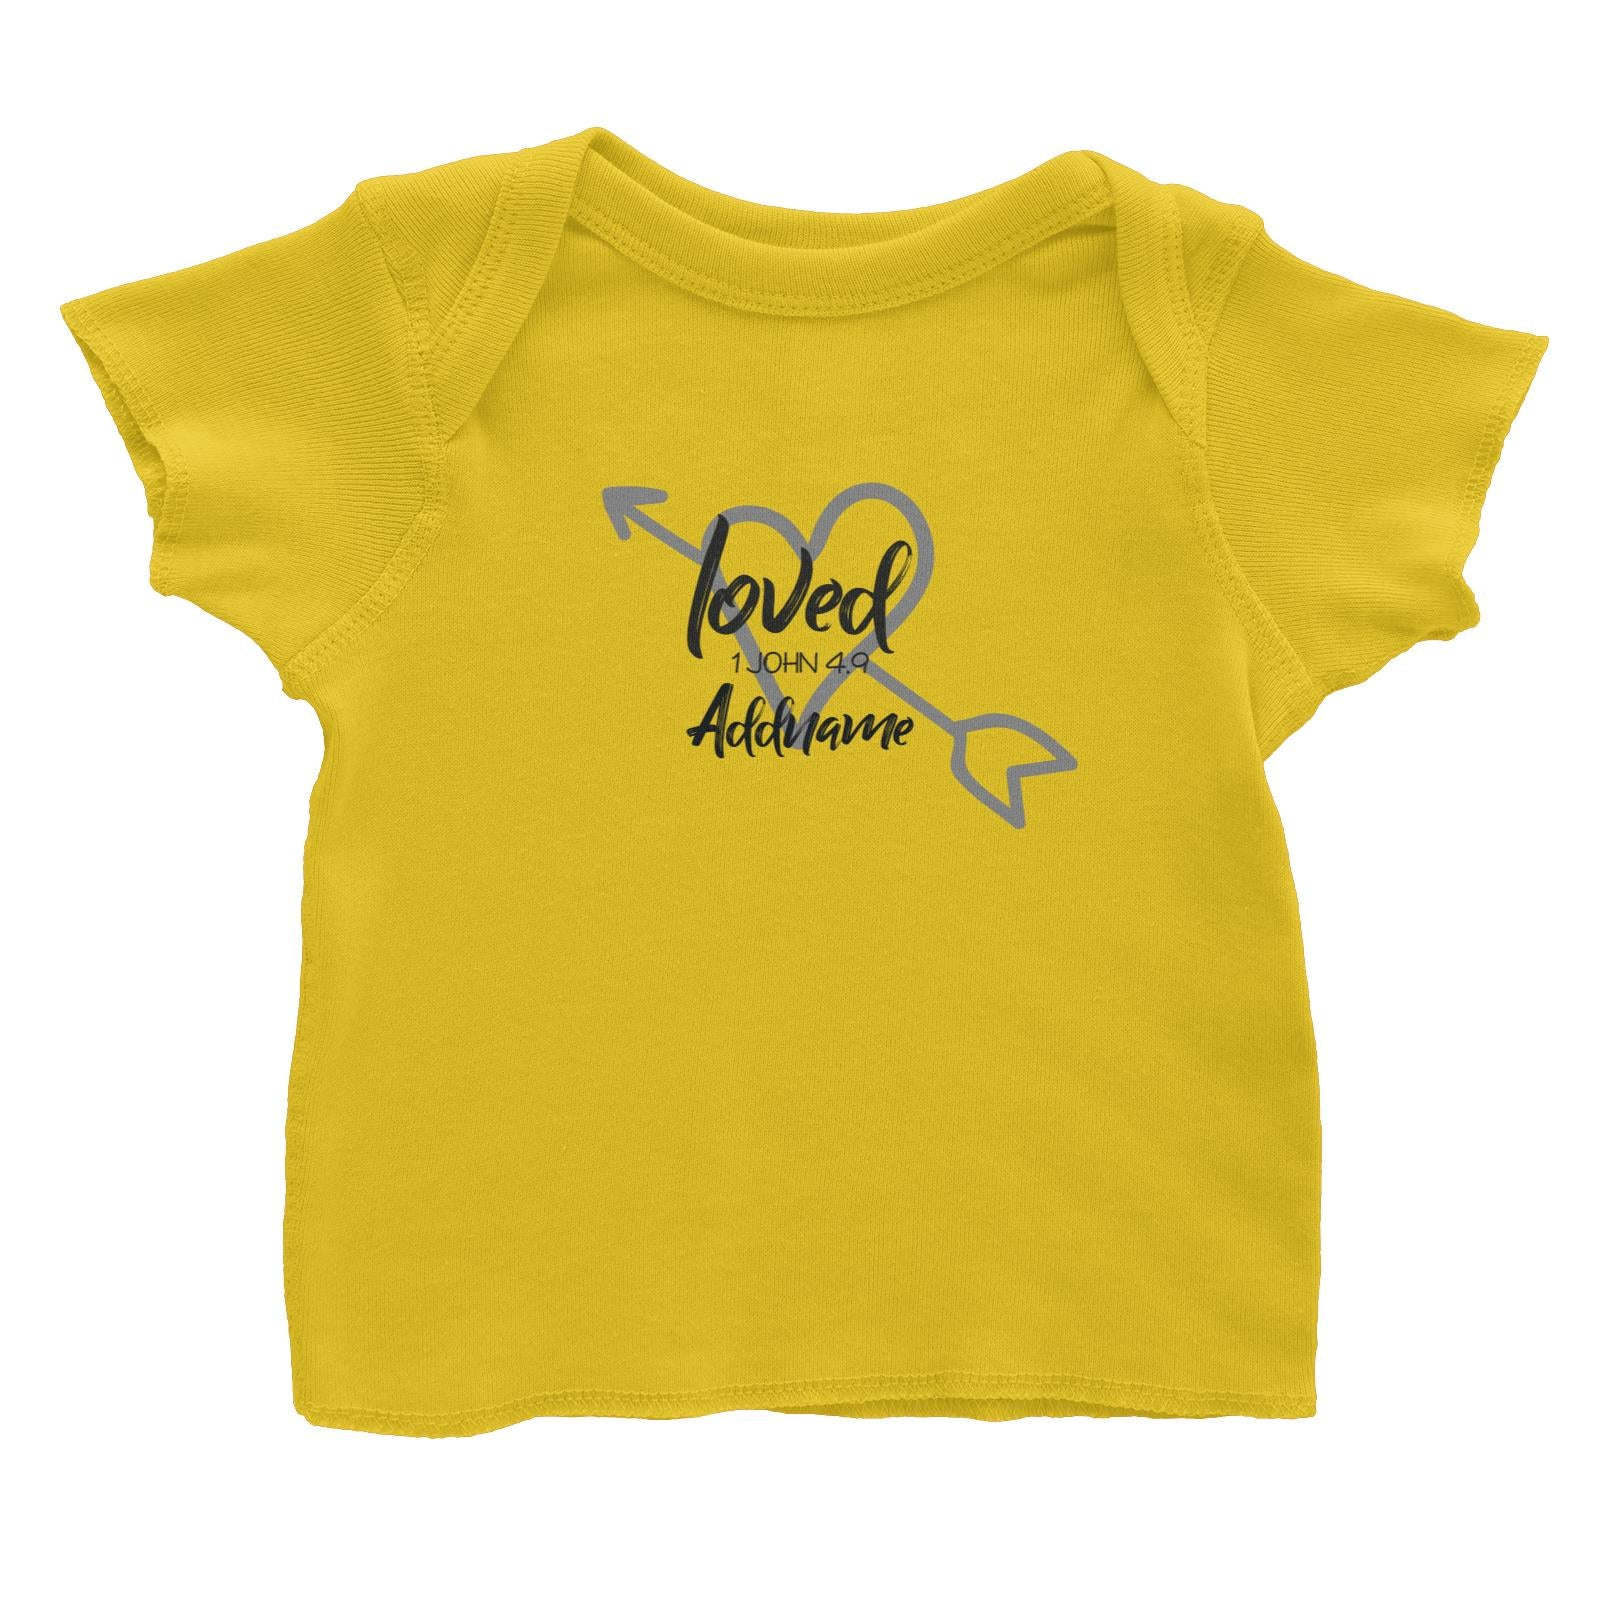 Loved Family Loved With Heart And Arrow 1 John 4.9 Addname Baby T-Shirt